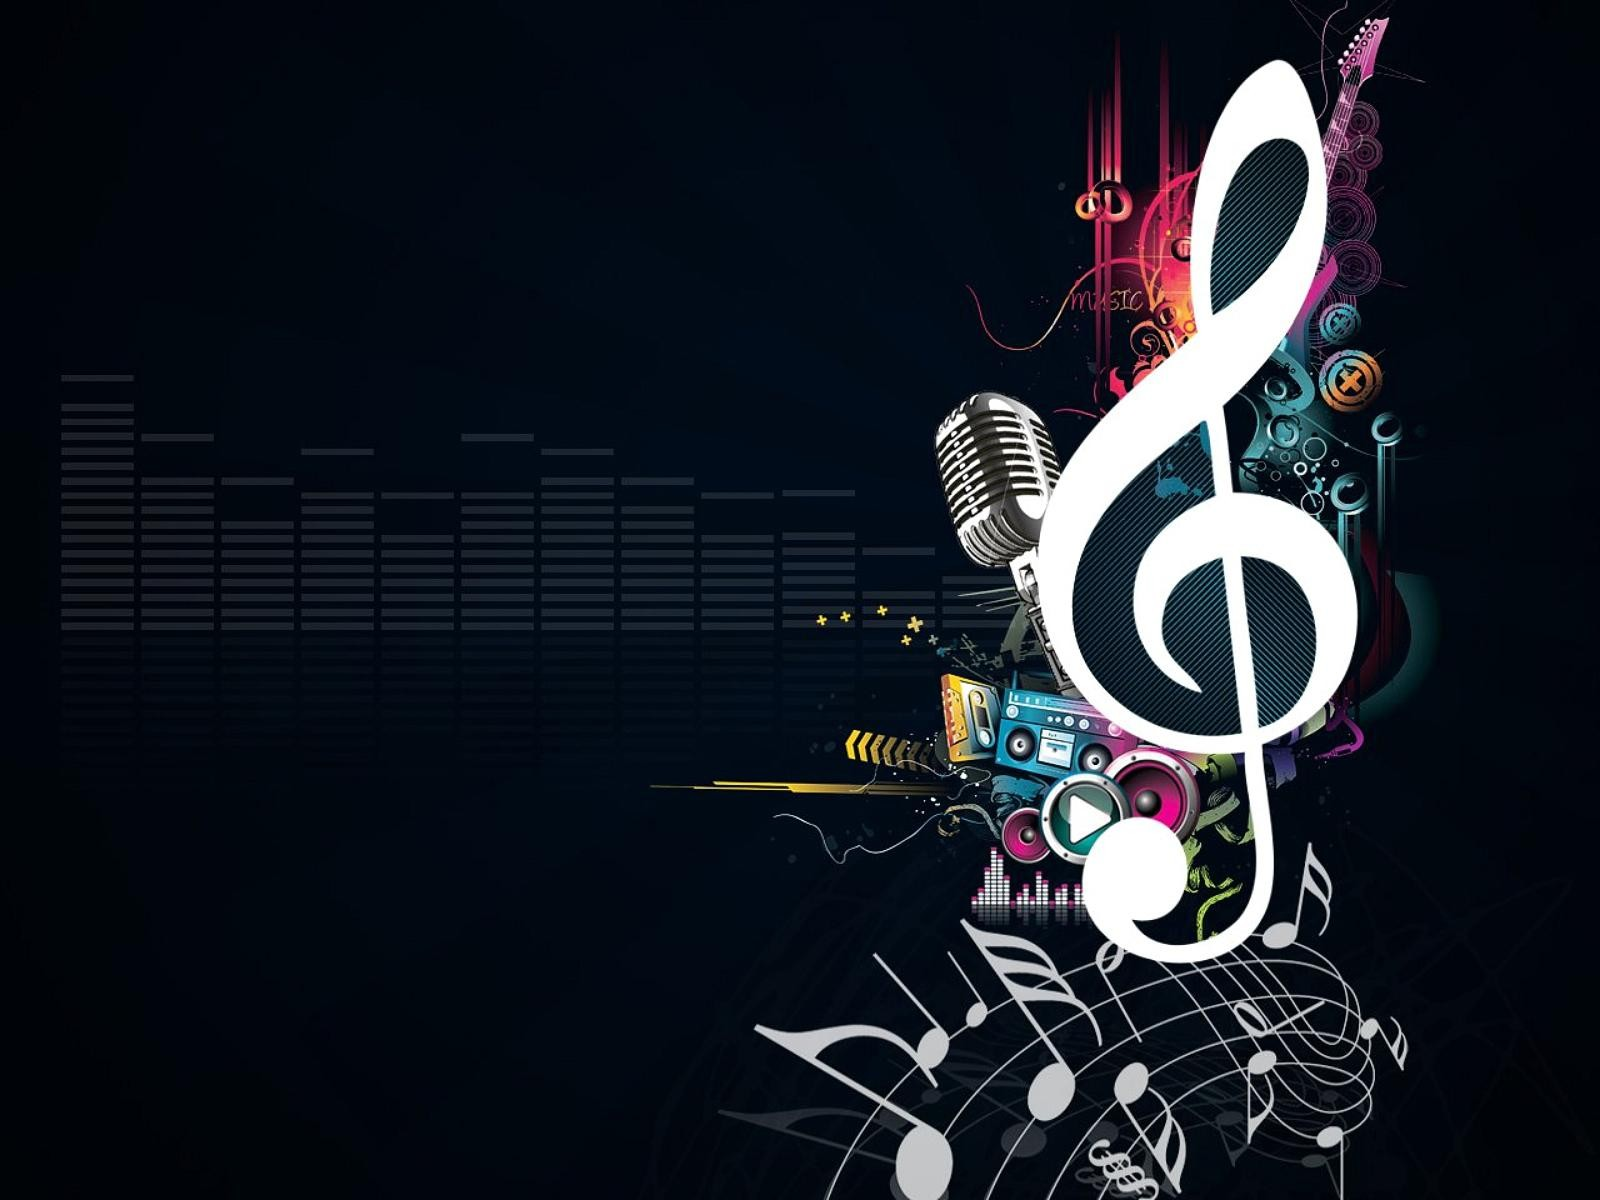 Music Background - Music Background